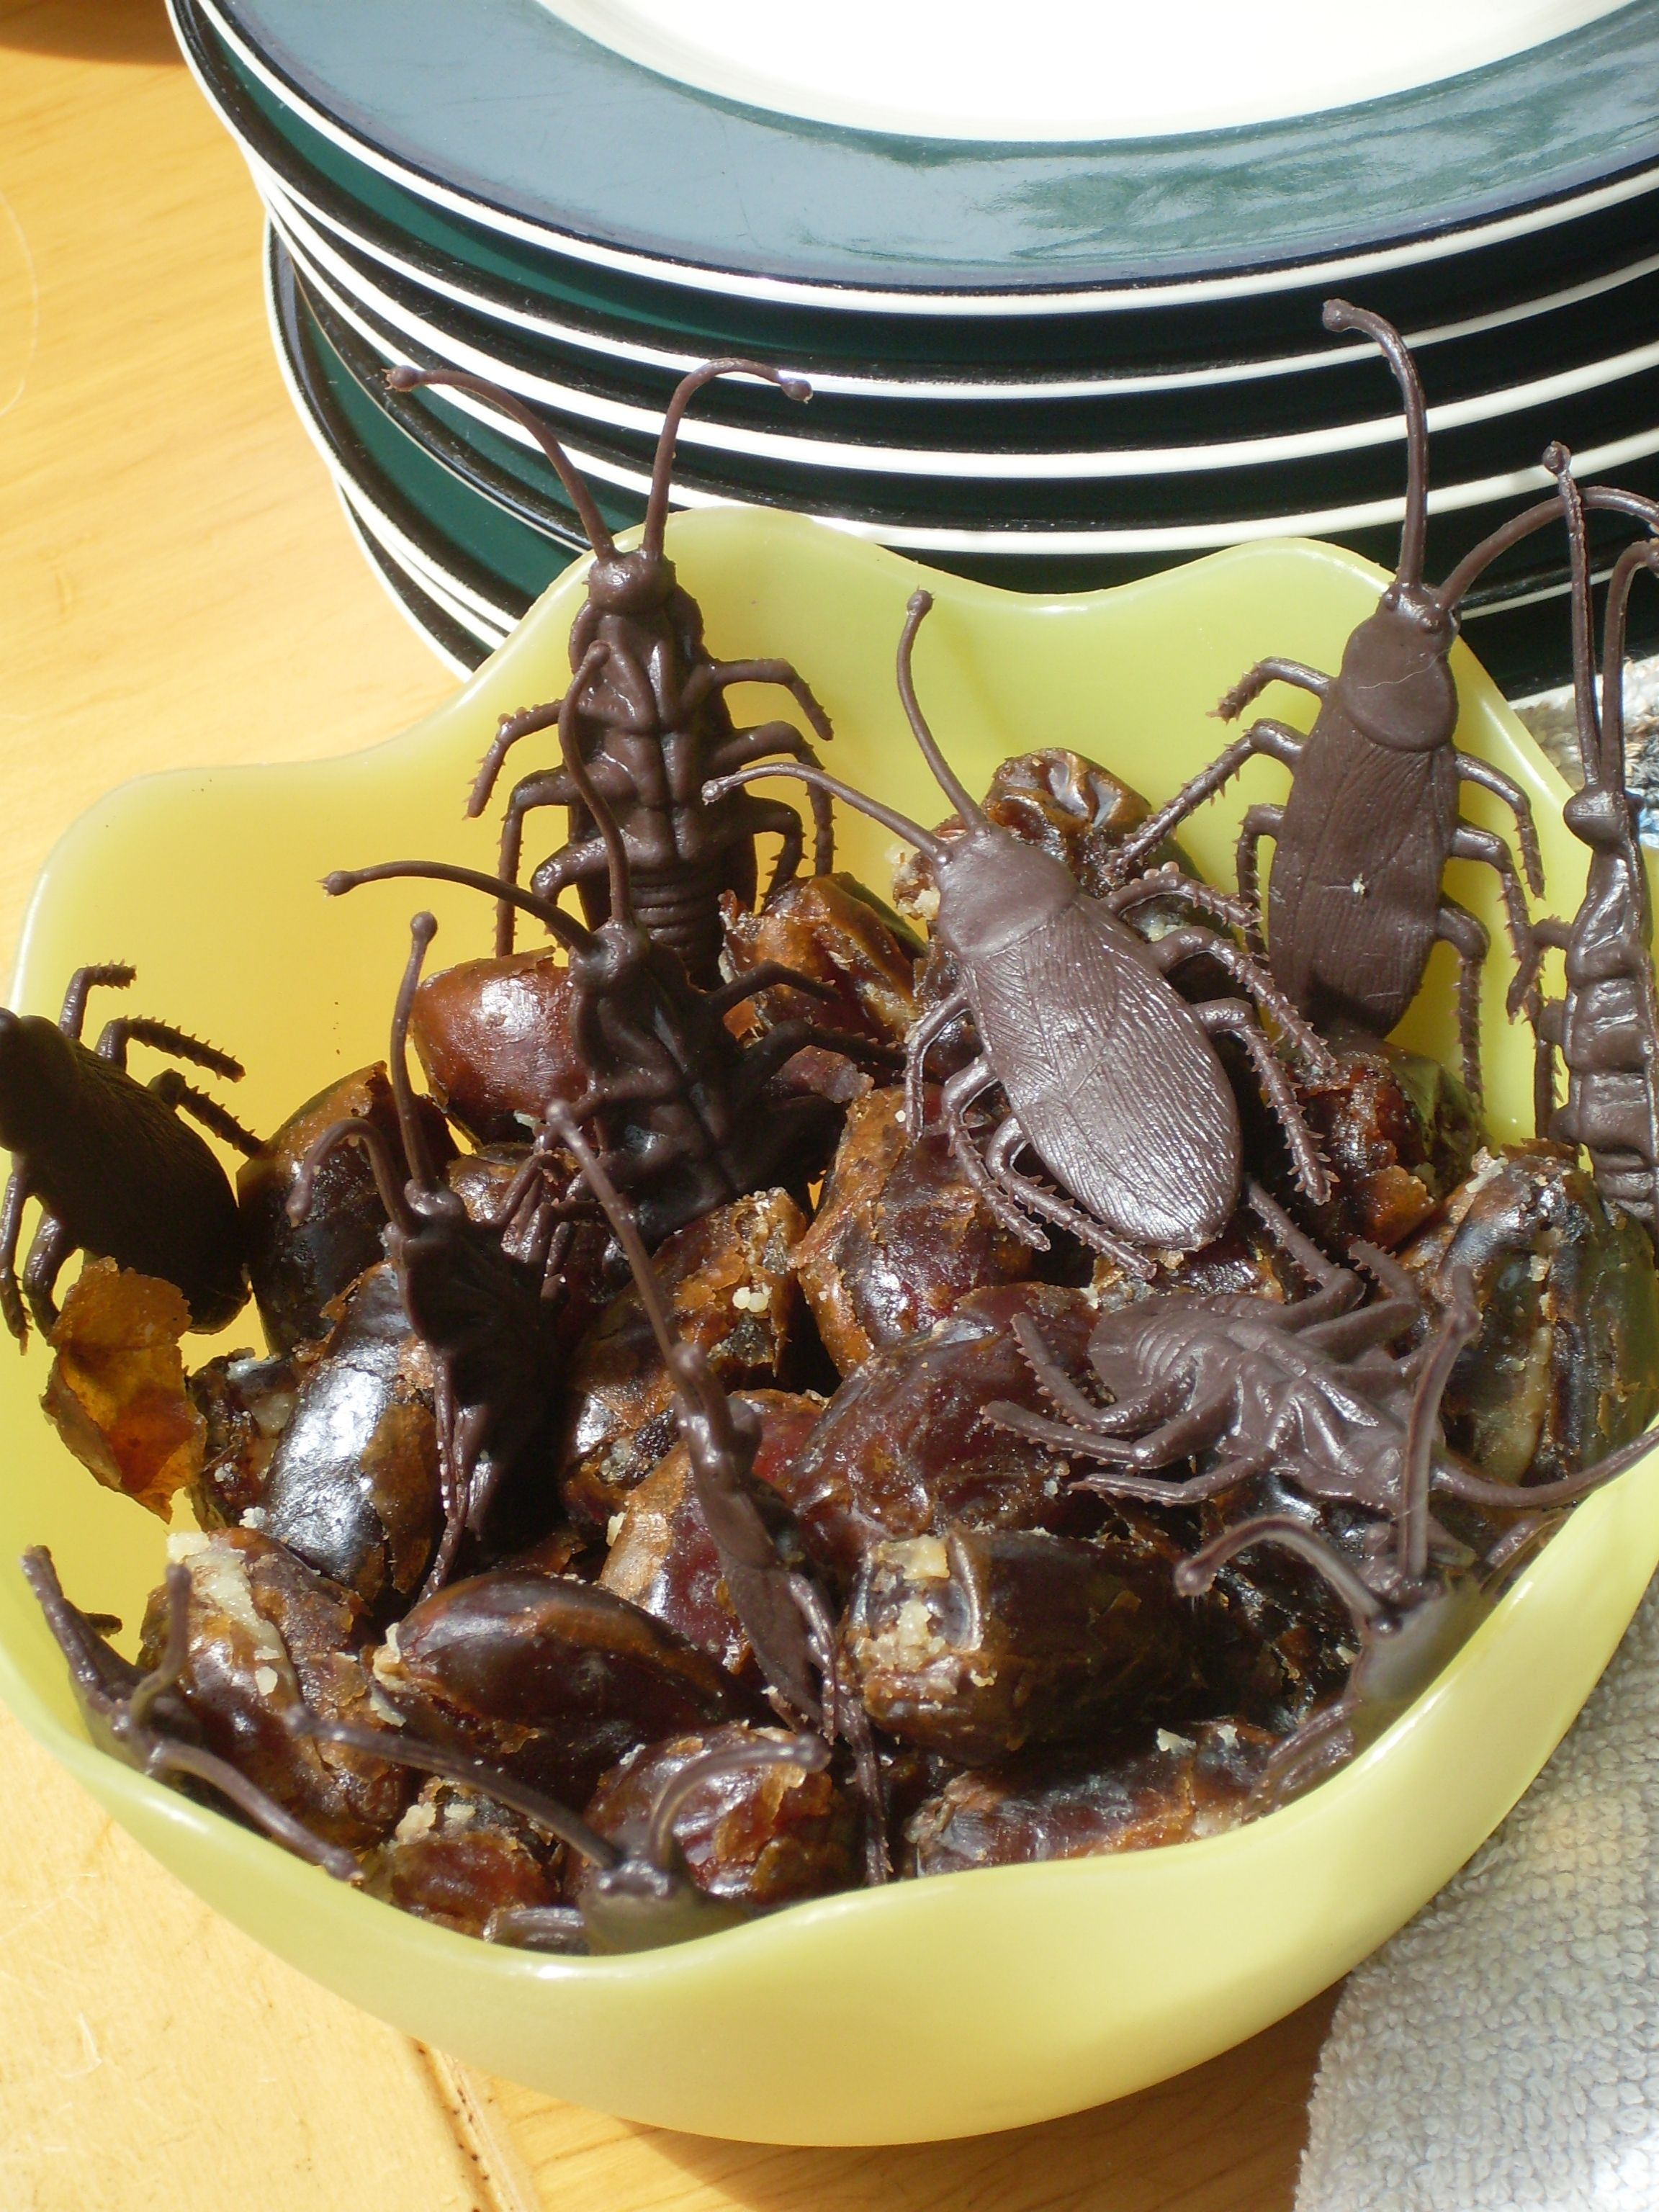 cockroach_halloween_snack Halloween food for party